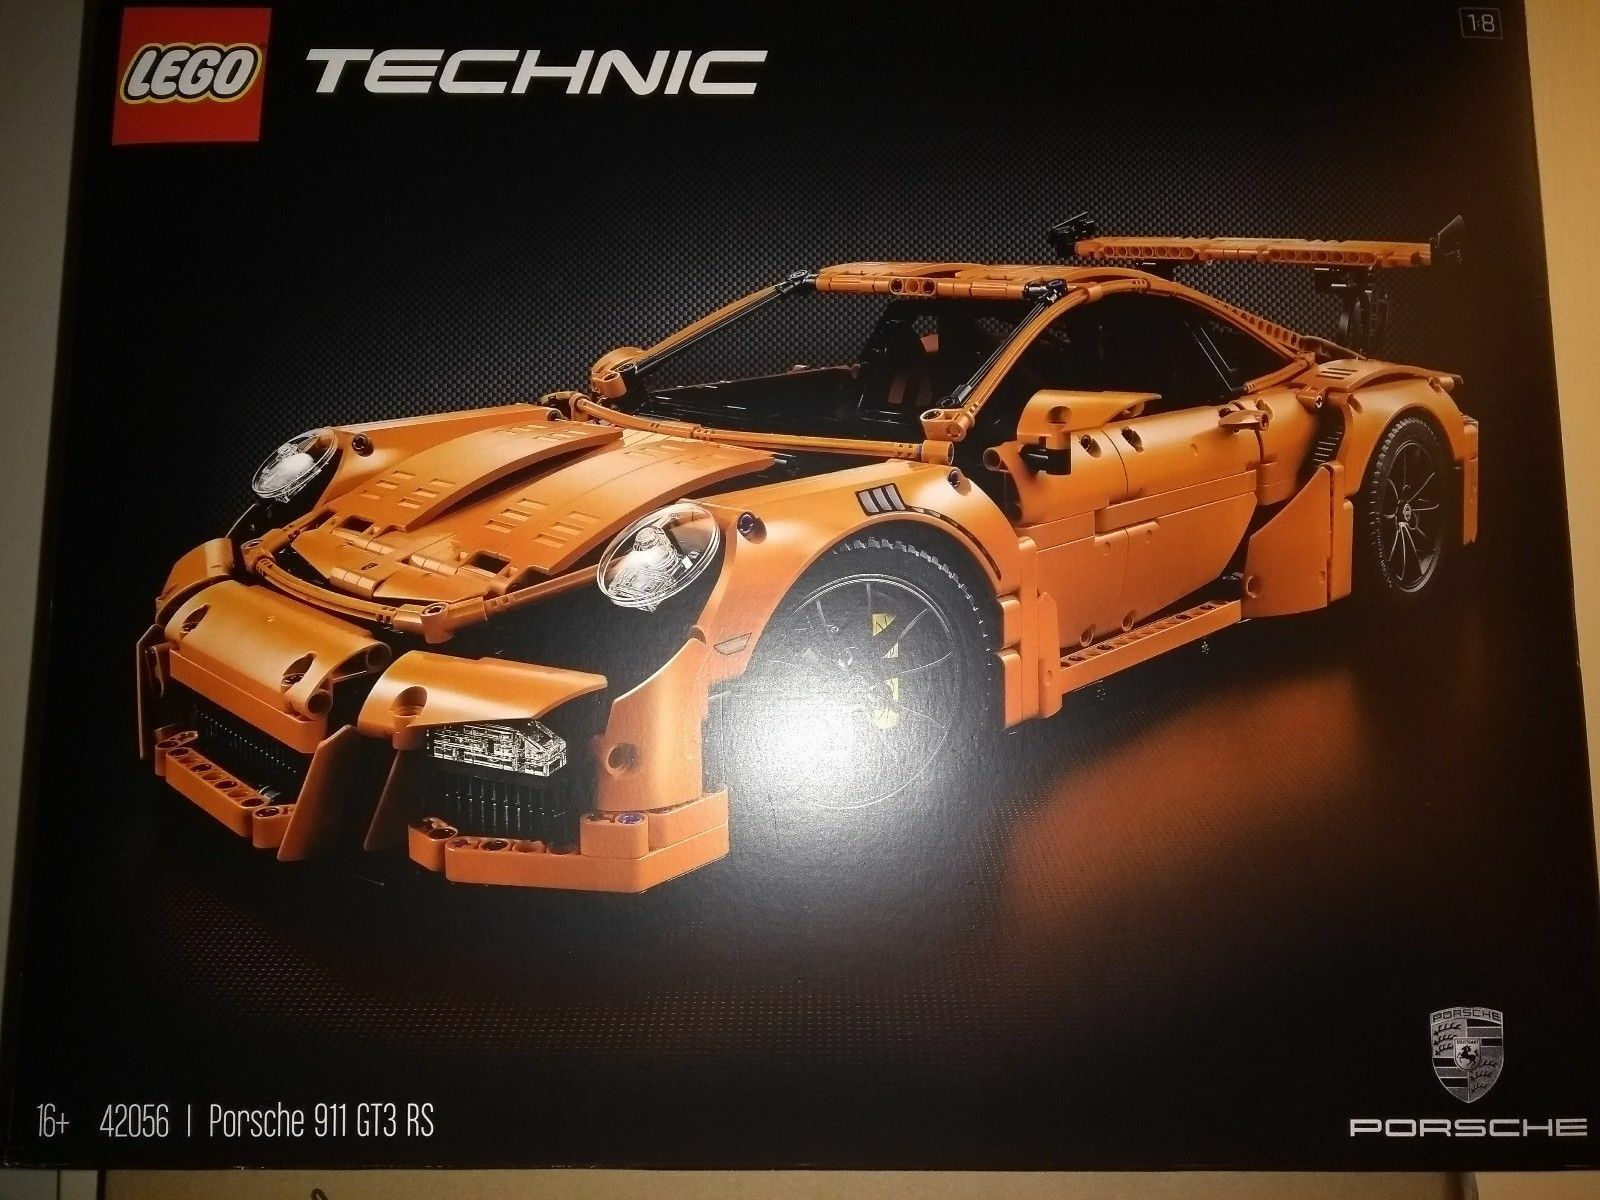 LEGO TECHNIC PORSCHE 911 GT3 RS (42056) Brand New Factory Sealed 1